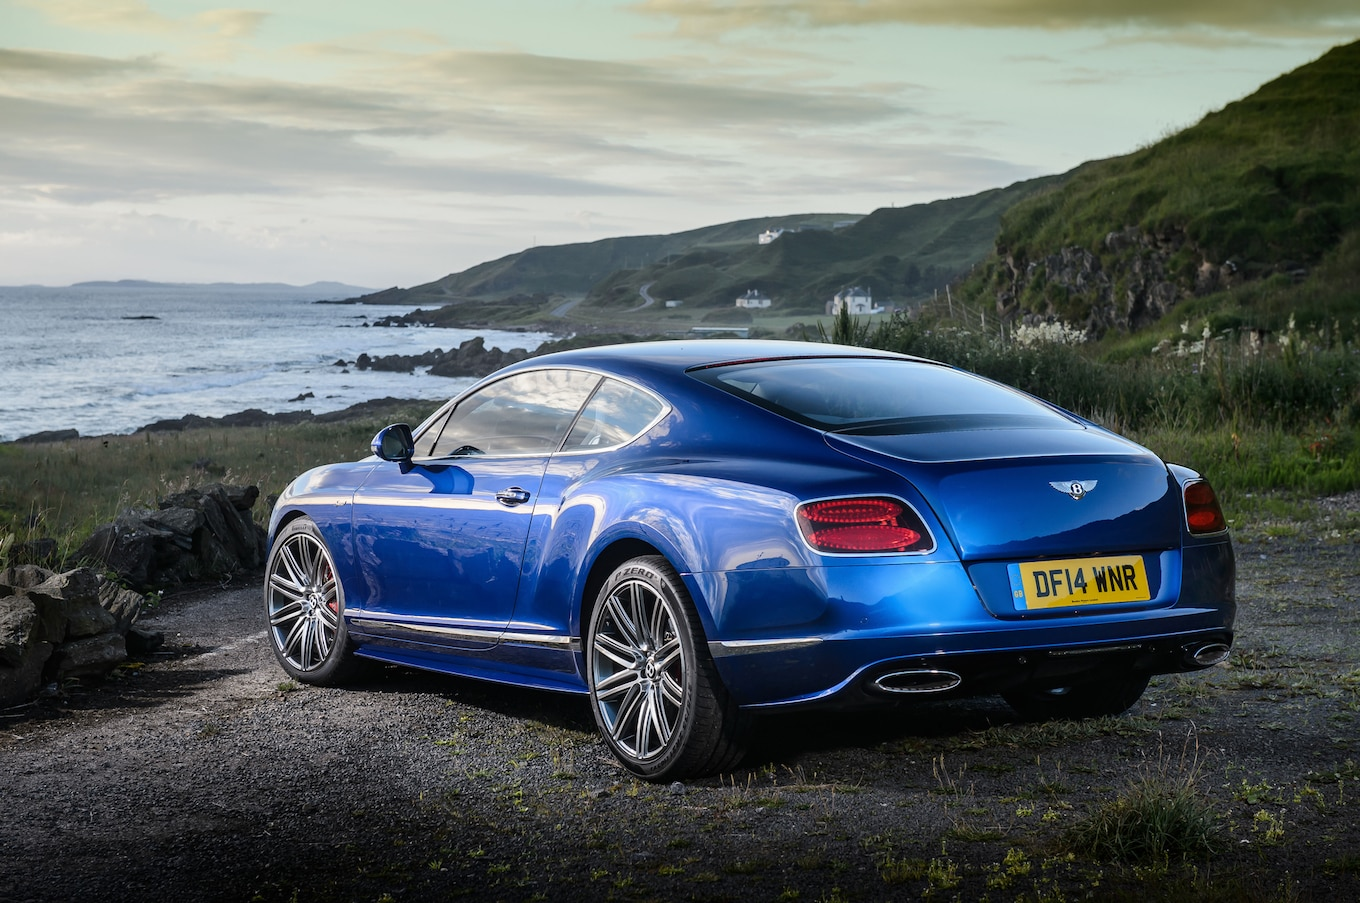 Suv Wallpapers Hd 2015 Bentley Continental Gt Reviews And Rating Motortrend